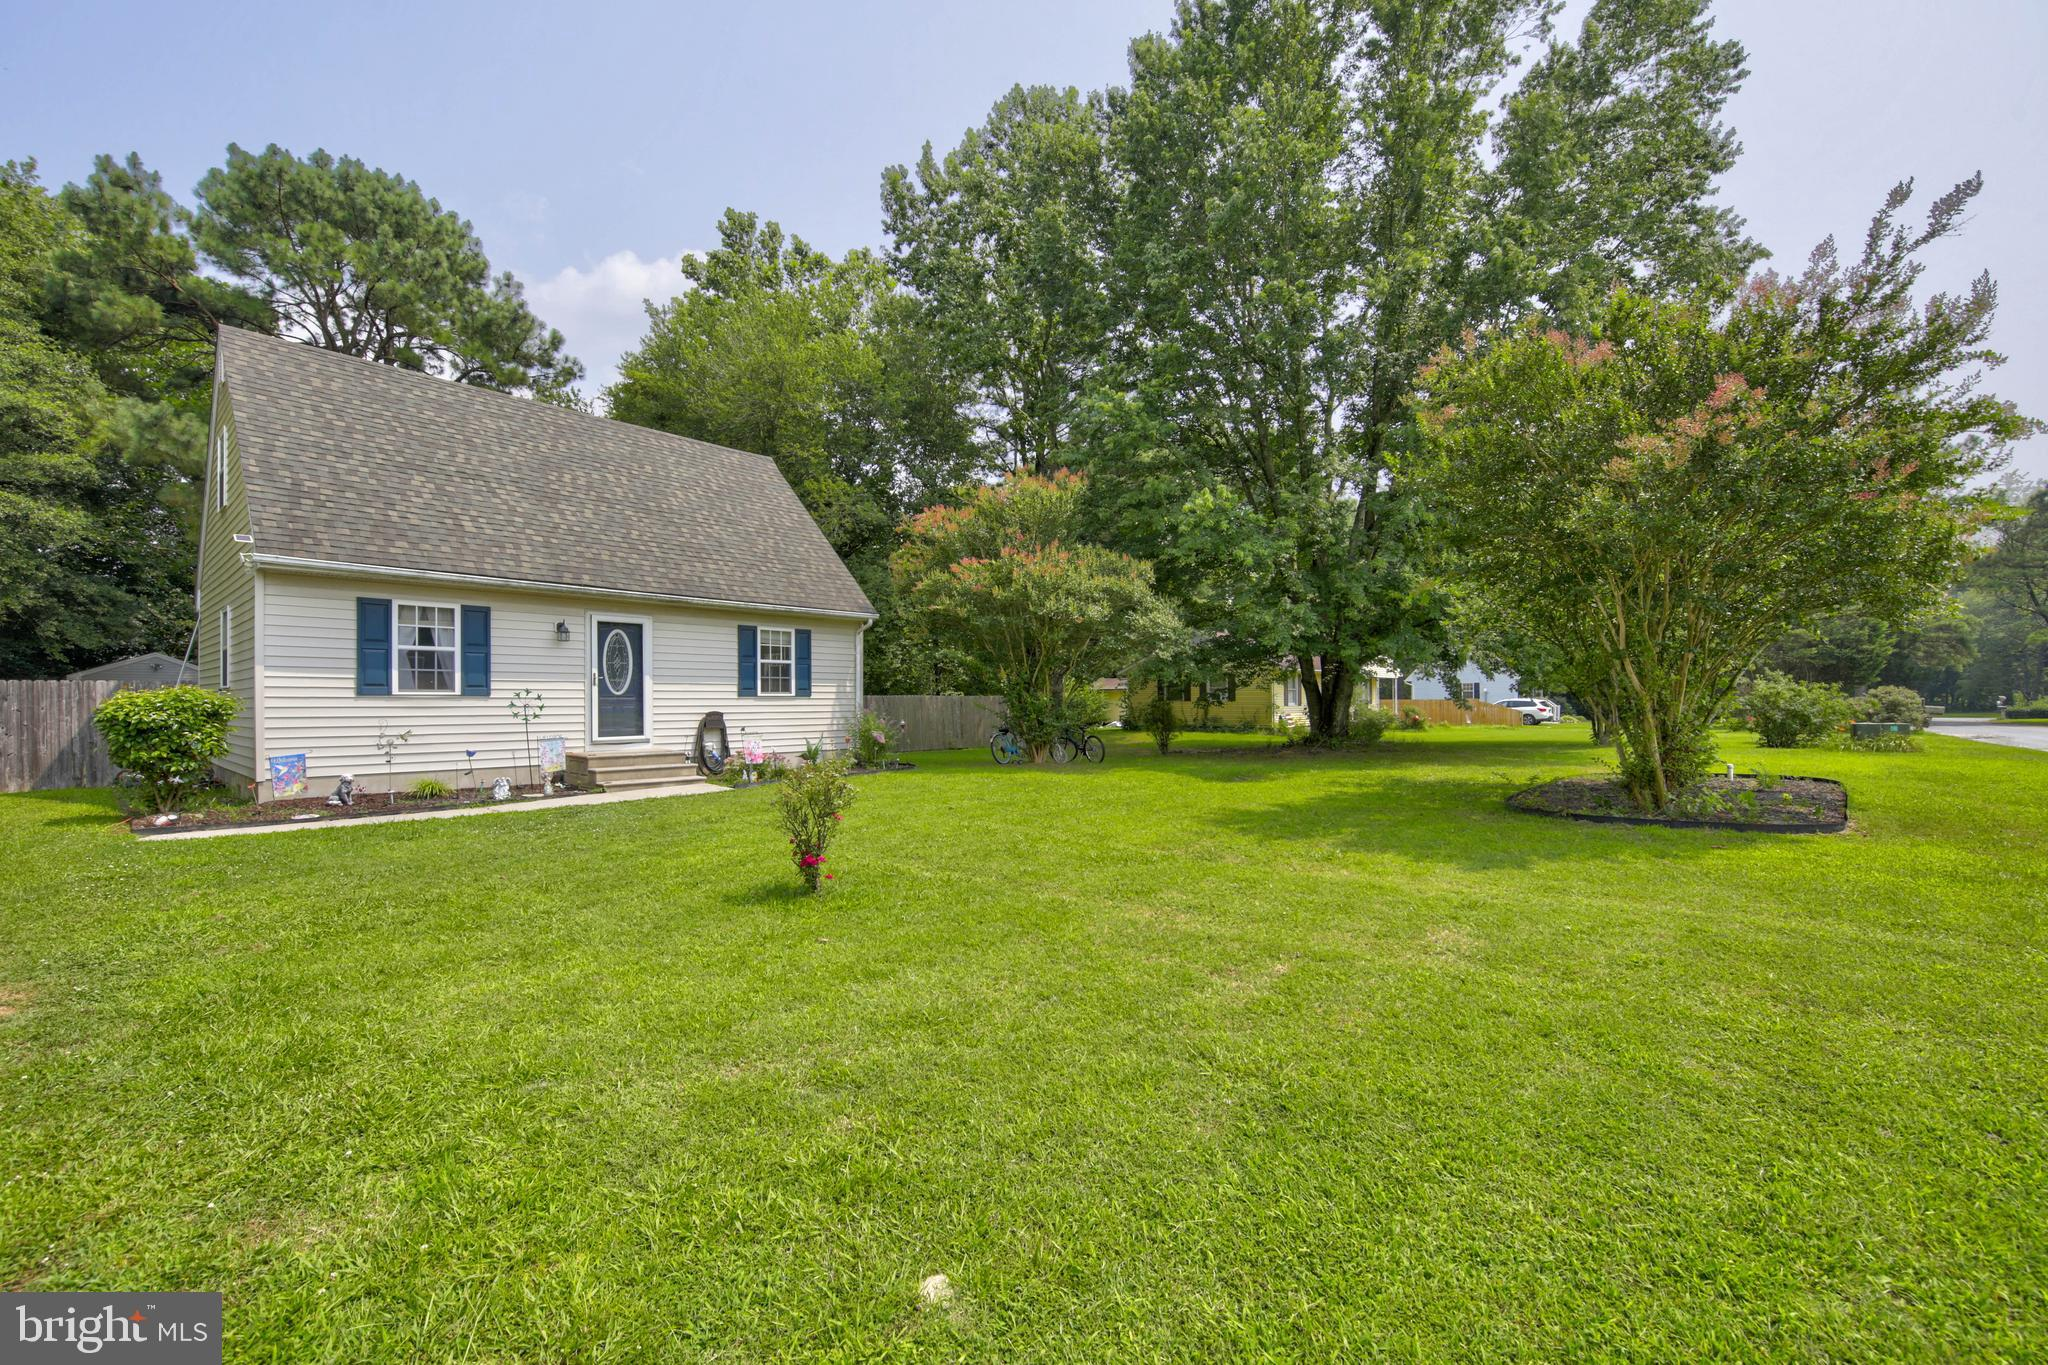 Welcome to Hebron!  This charming 3 bedroom, 2 full bathroom Cape Cod is located on a tucked away st